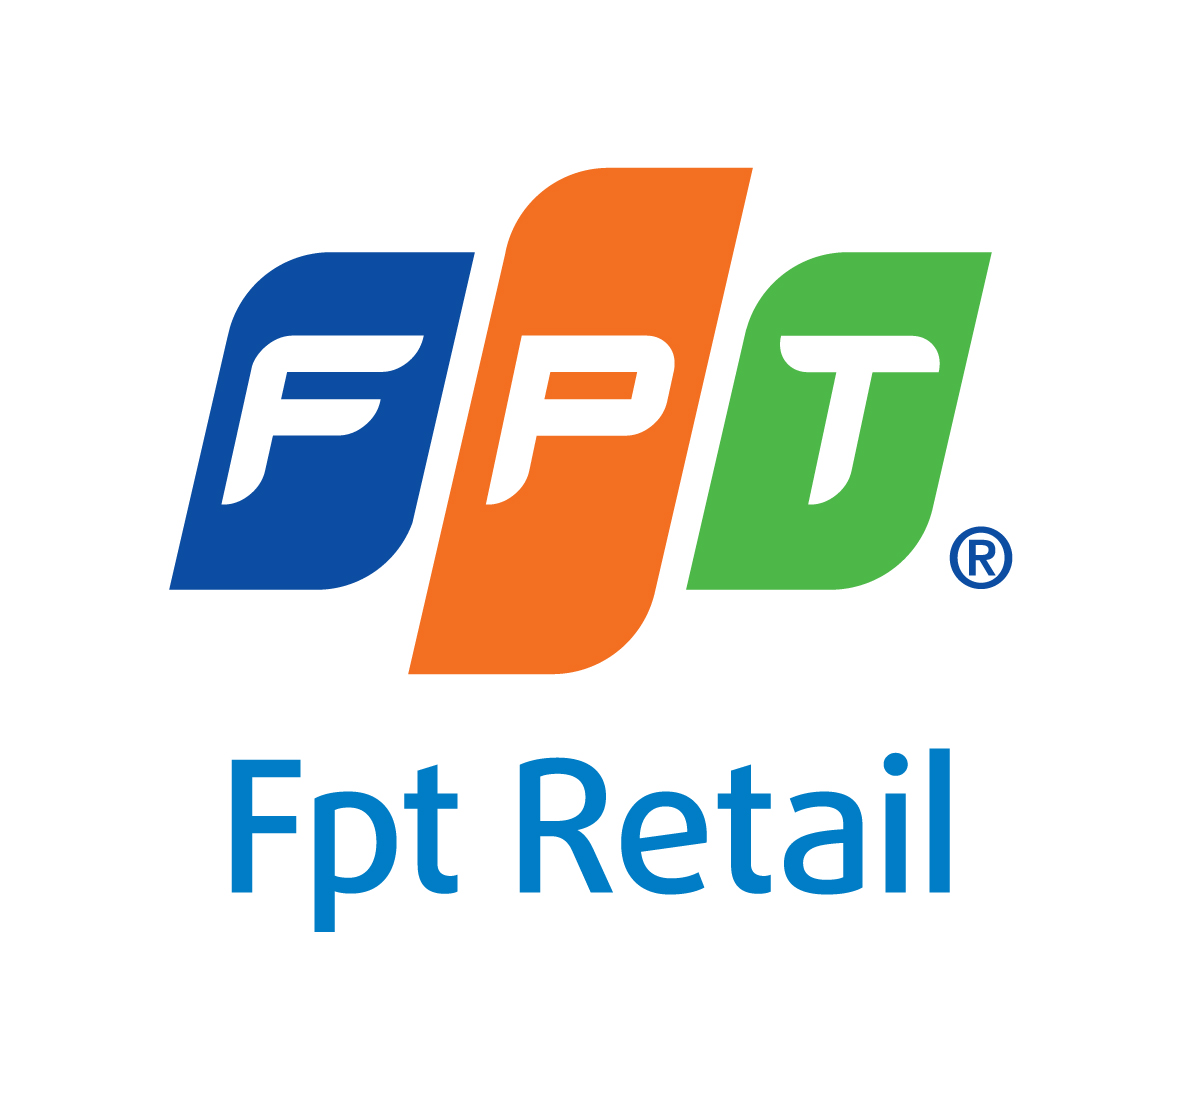 Joint stock company - Fpt Digital Retail Joint Stock Company